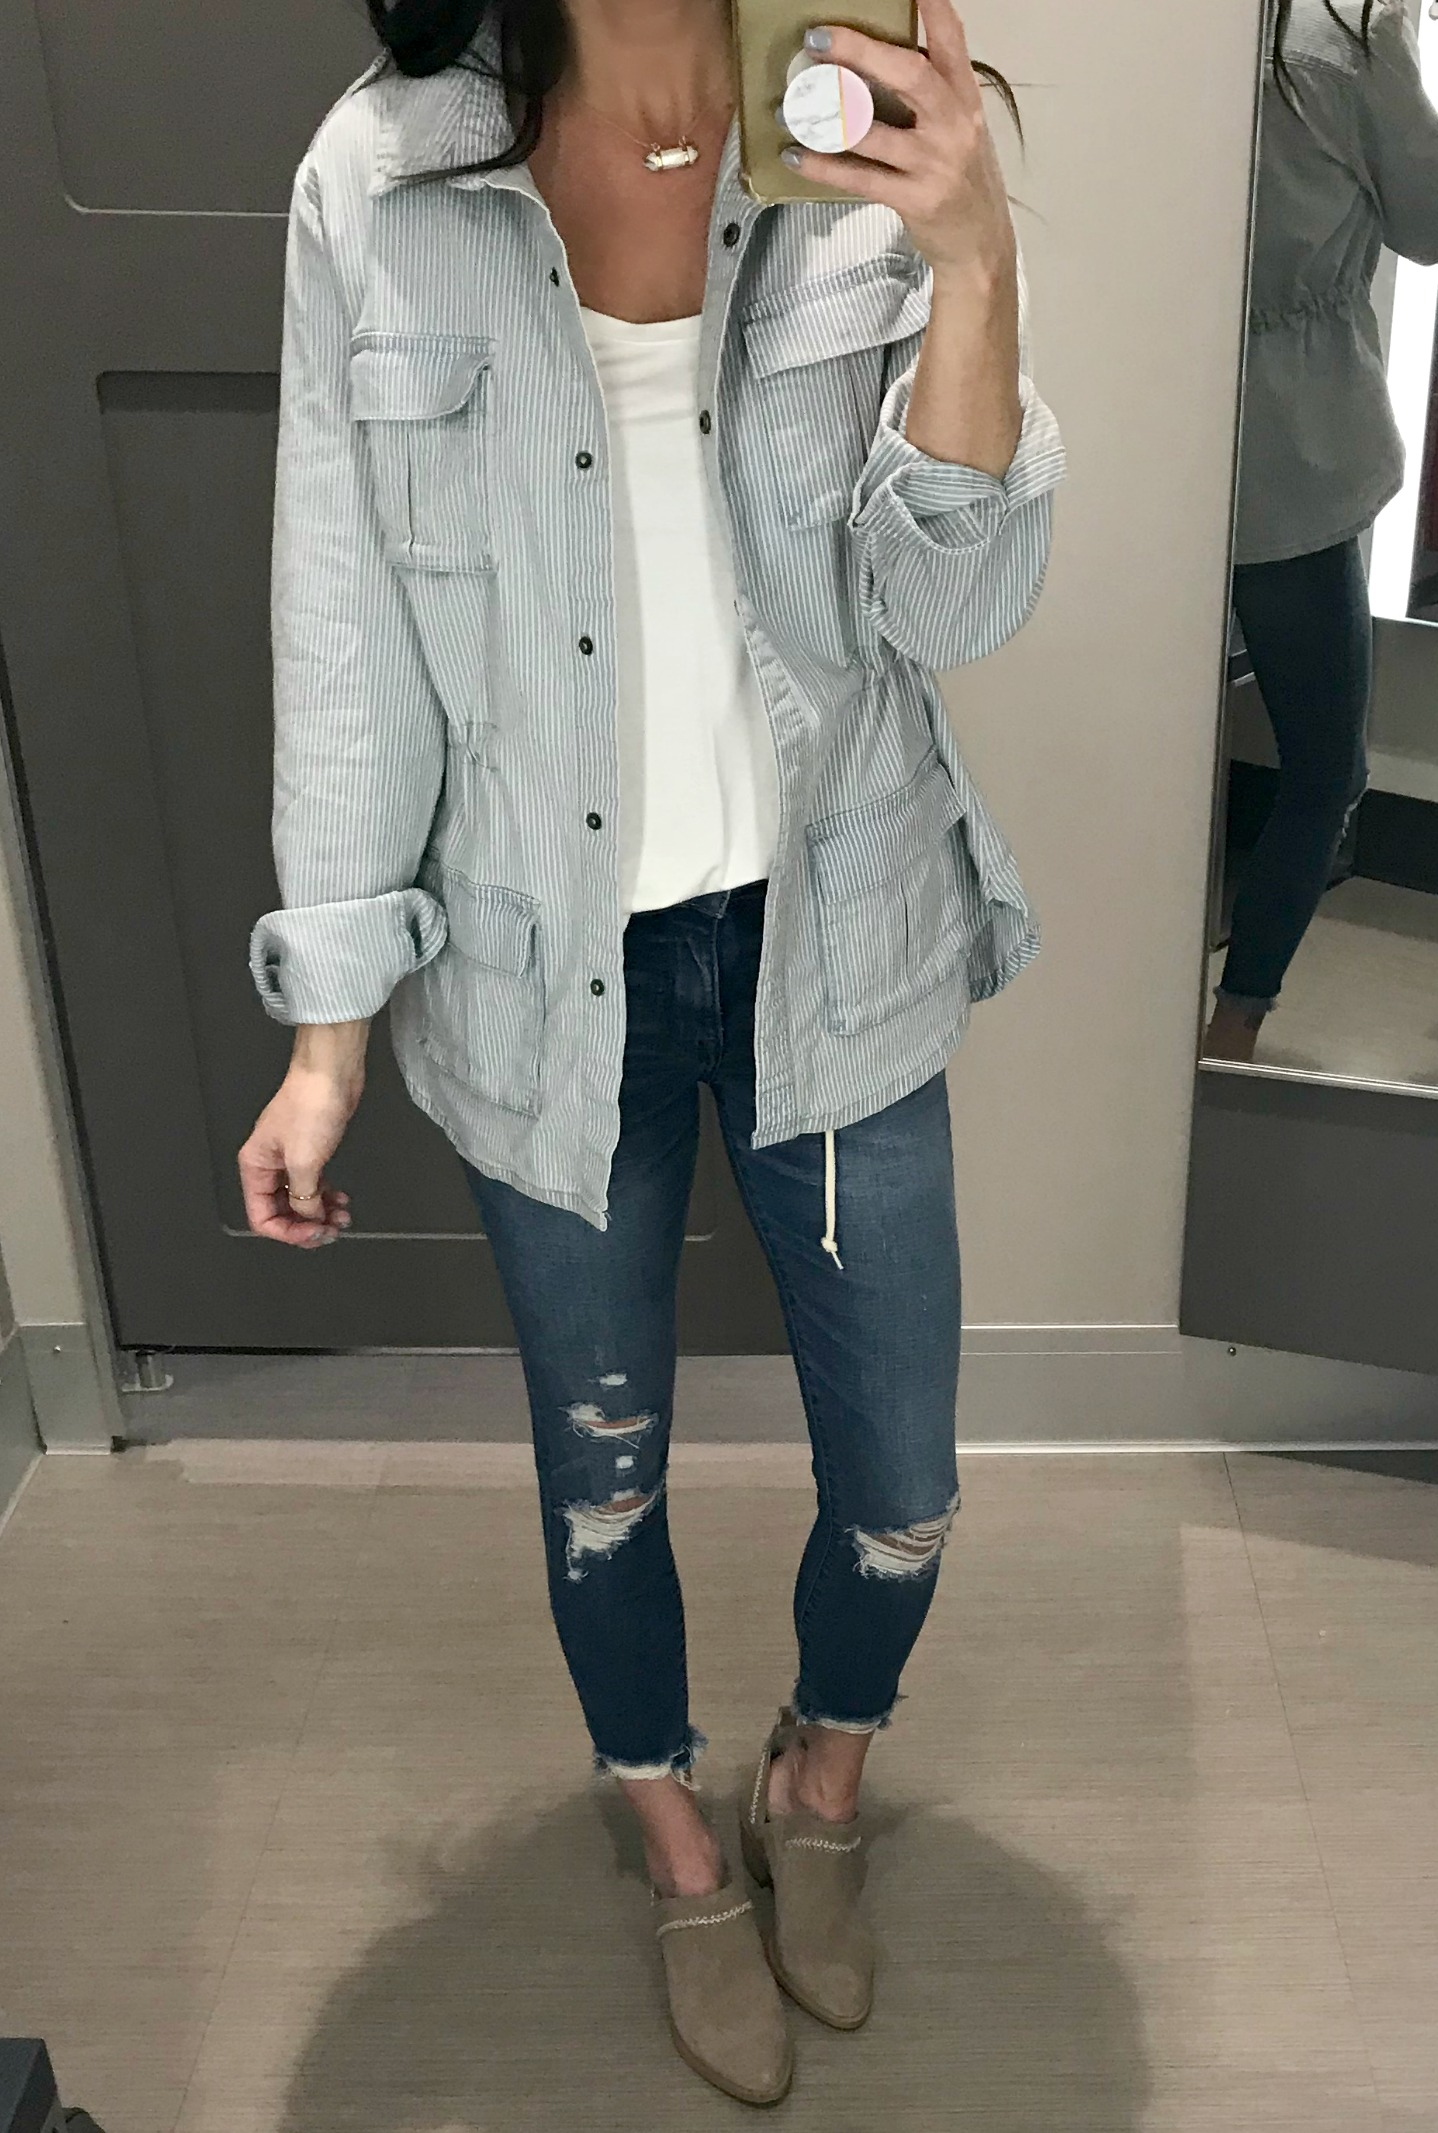 Jacket, cami, jeans, and booties